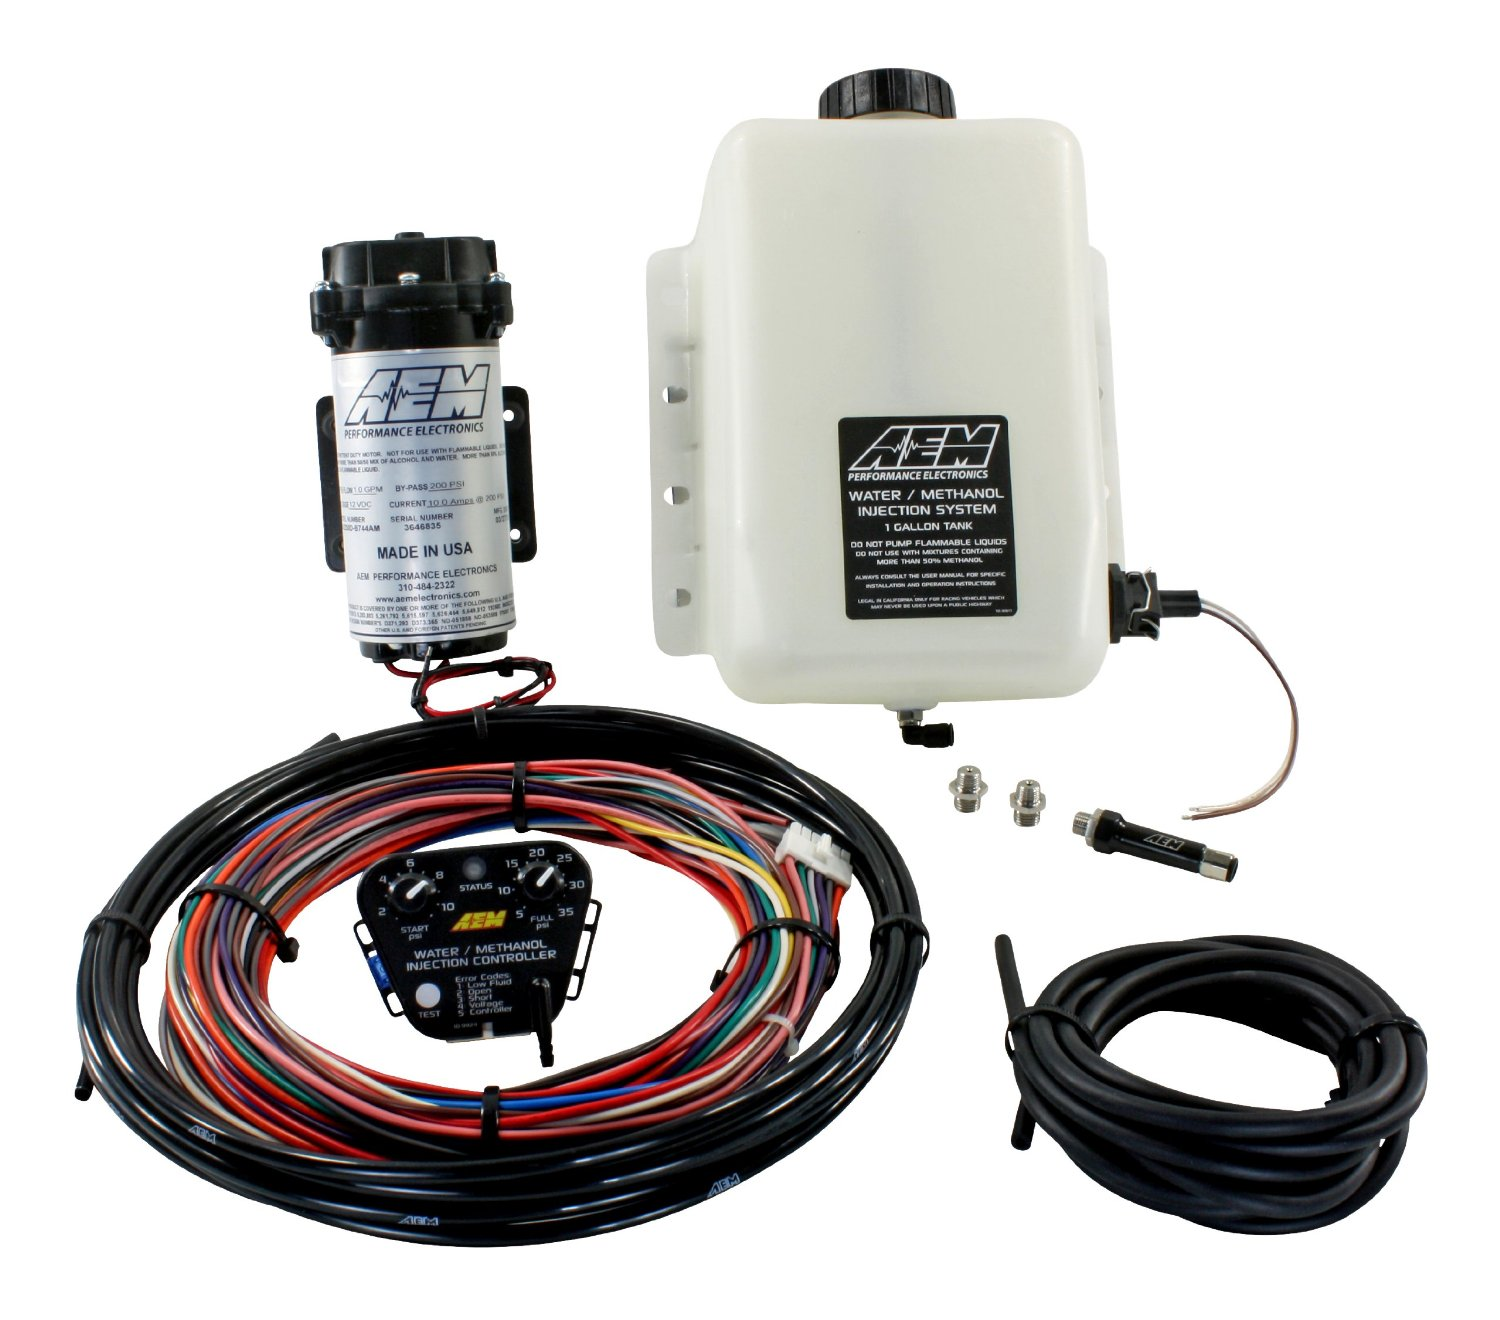 AEM Water / Methanol Injection Kit V2 -1 Gallon